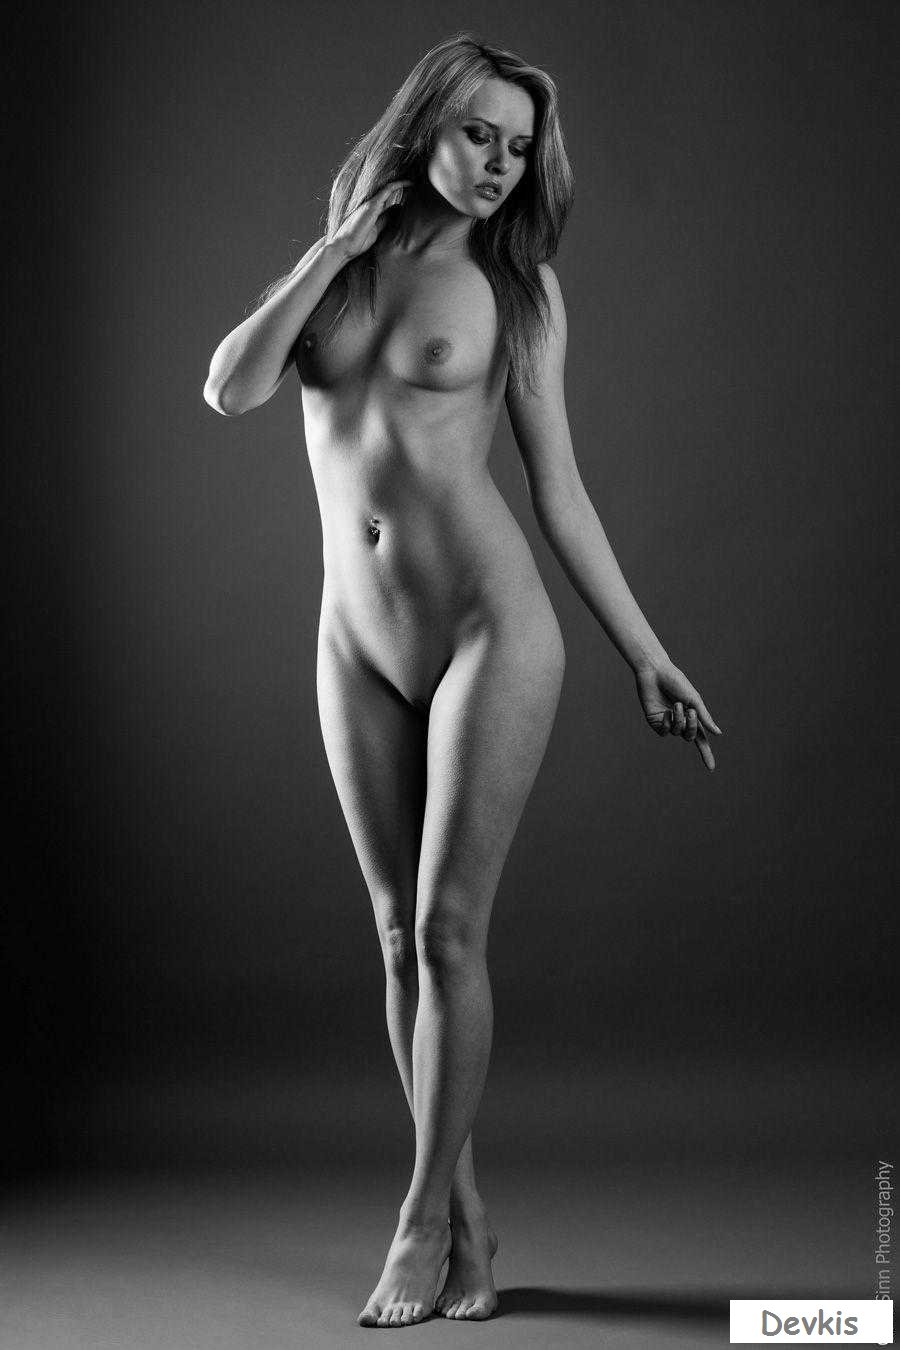 Teen with delightful titties strips and proudly shows her nude body